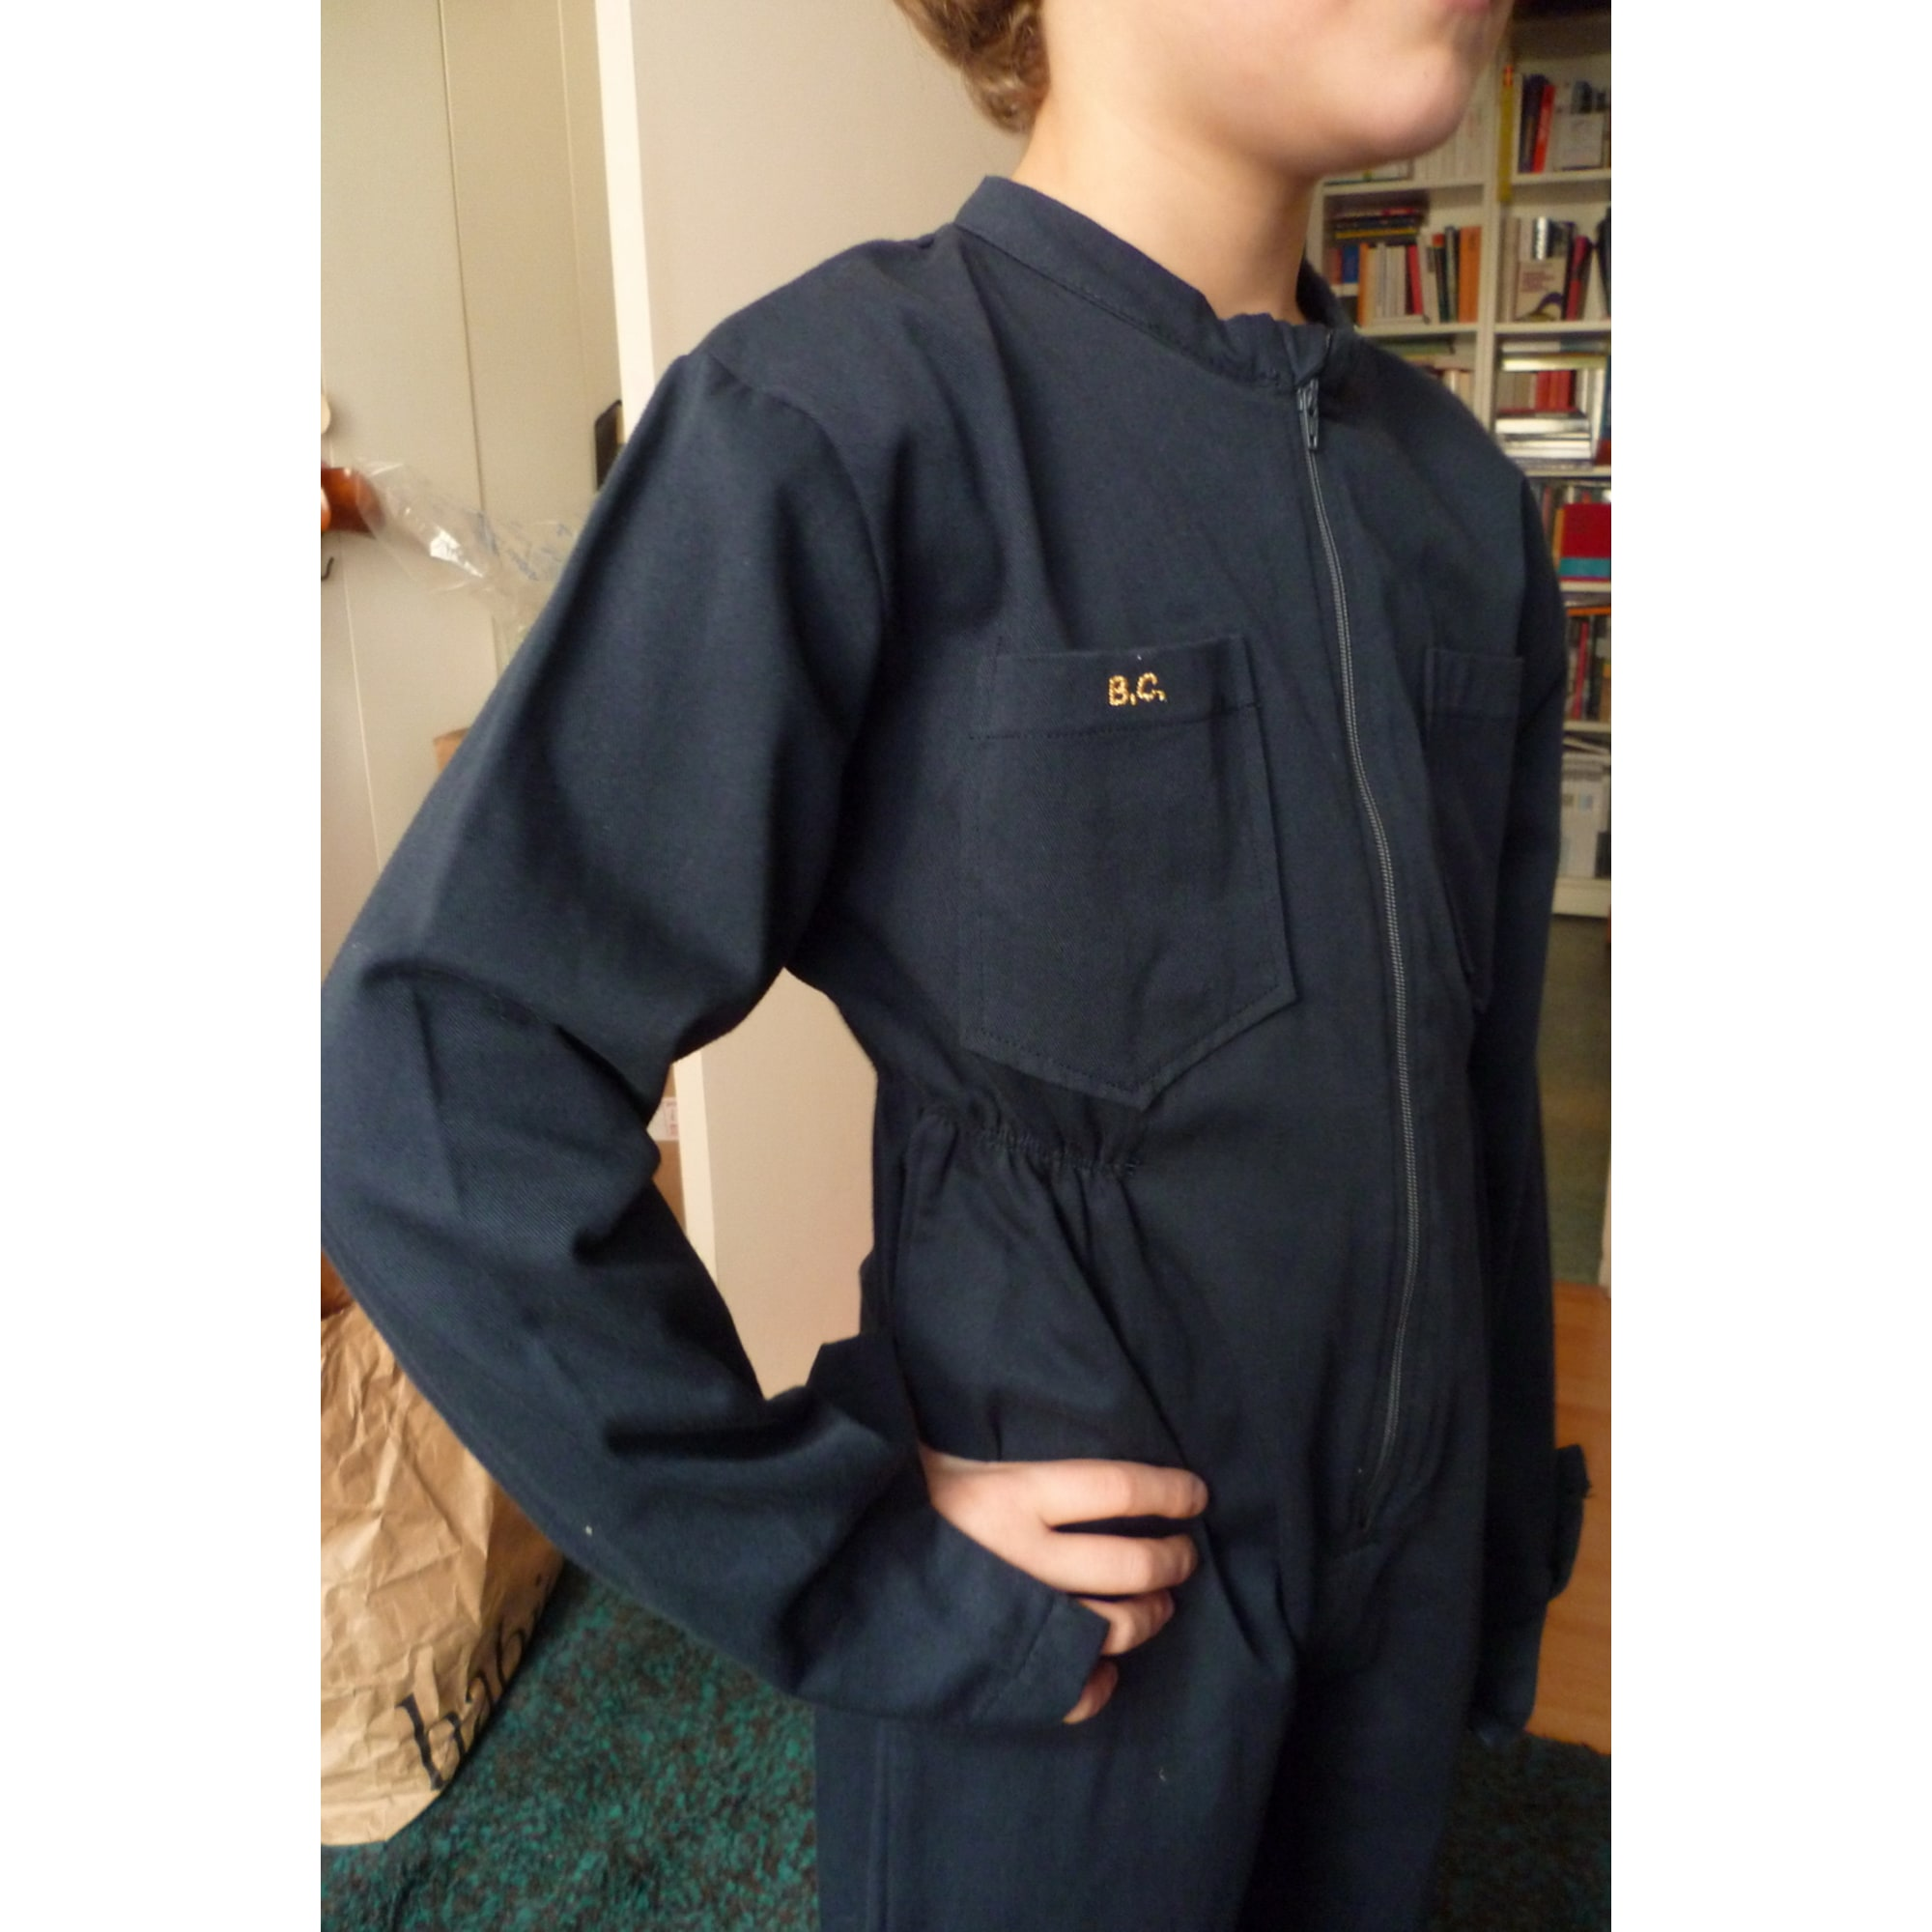 Pants Set, Outfit BOBO CHOSES Blue, navy, turquoise